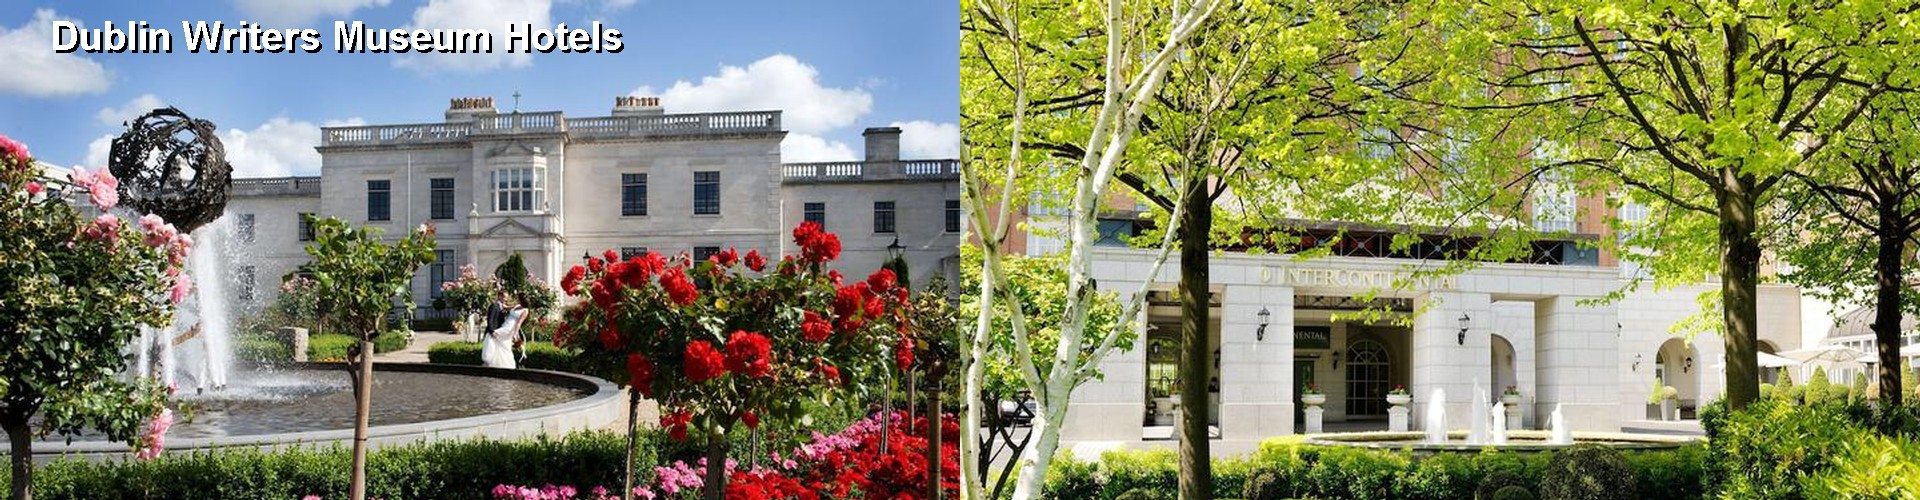 5 Best Hotels near Dublin Writers Museum